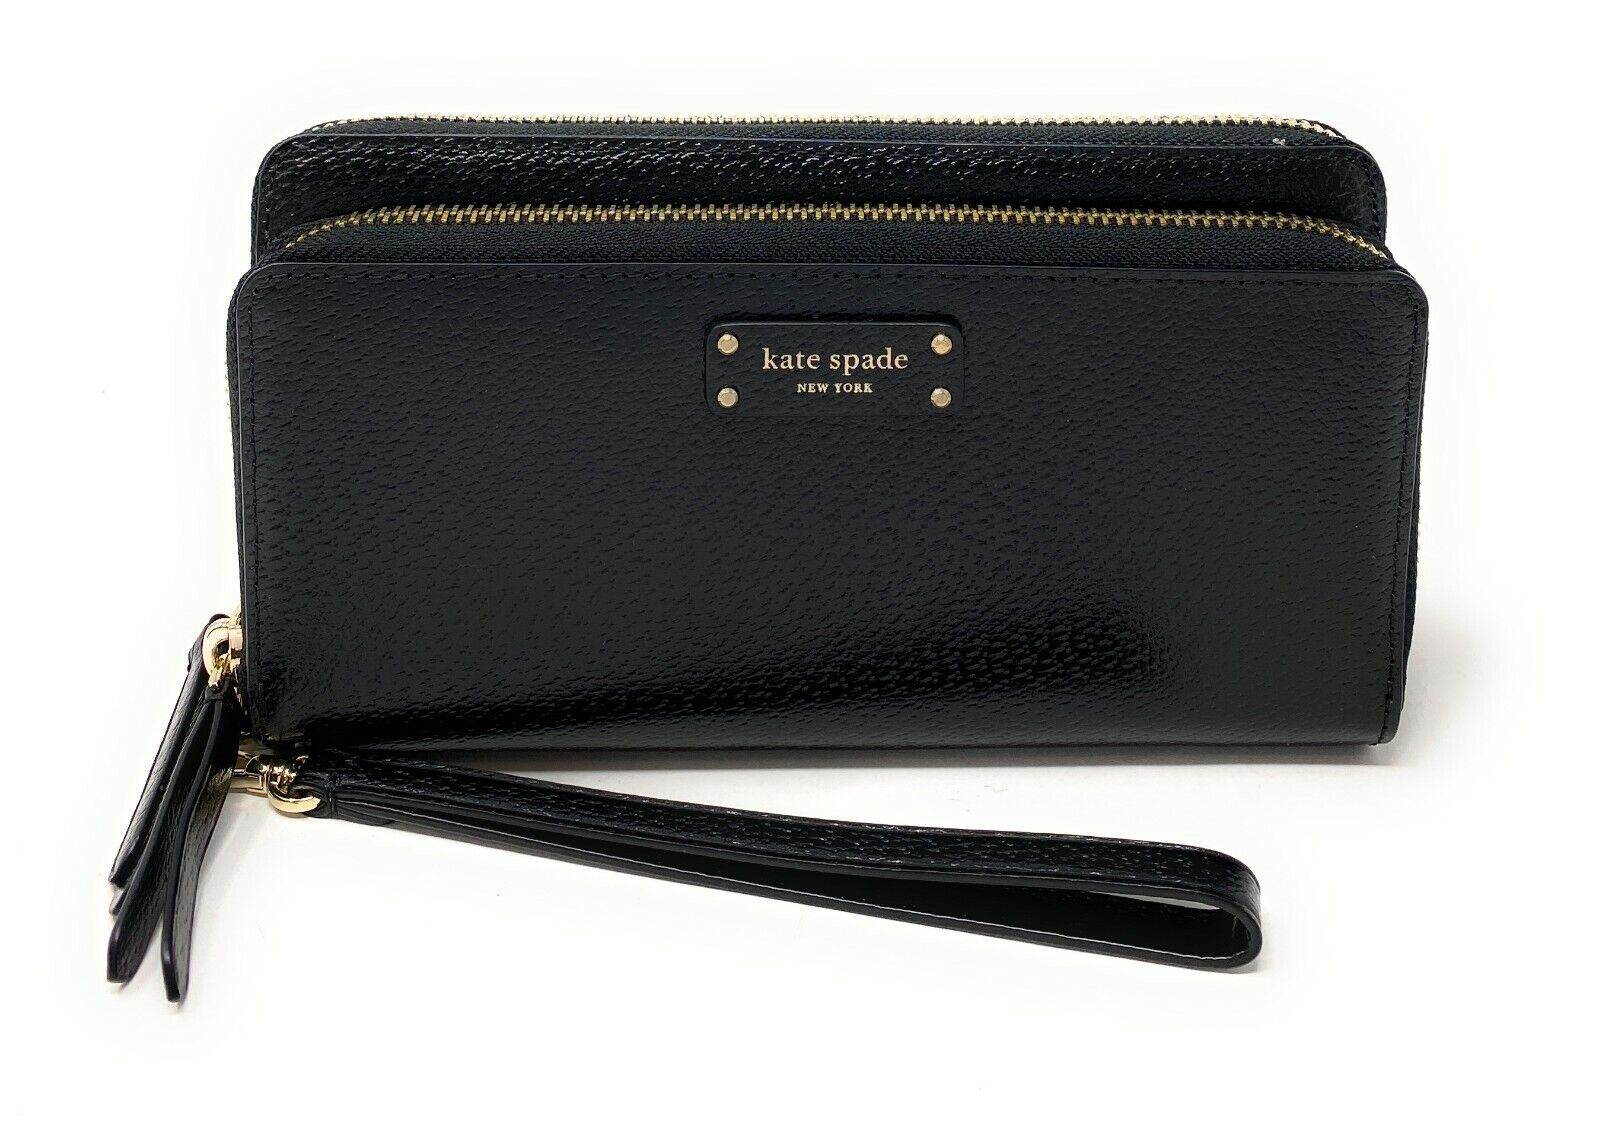 Kate Spade Large Carryall Wristlet Jeanne Wristlet Clutch Wallet $199 Clothing, Shoes & Accessories